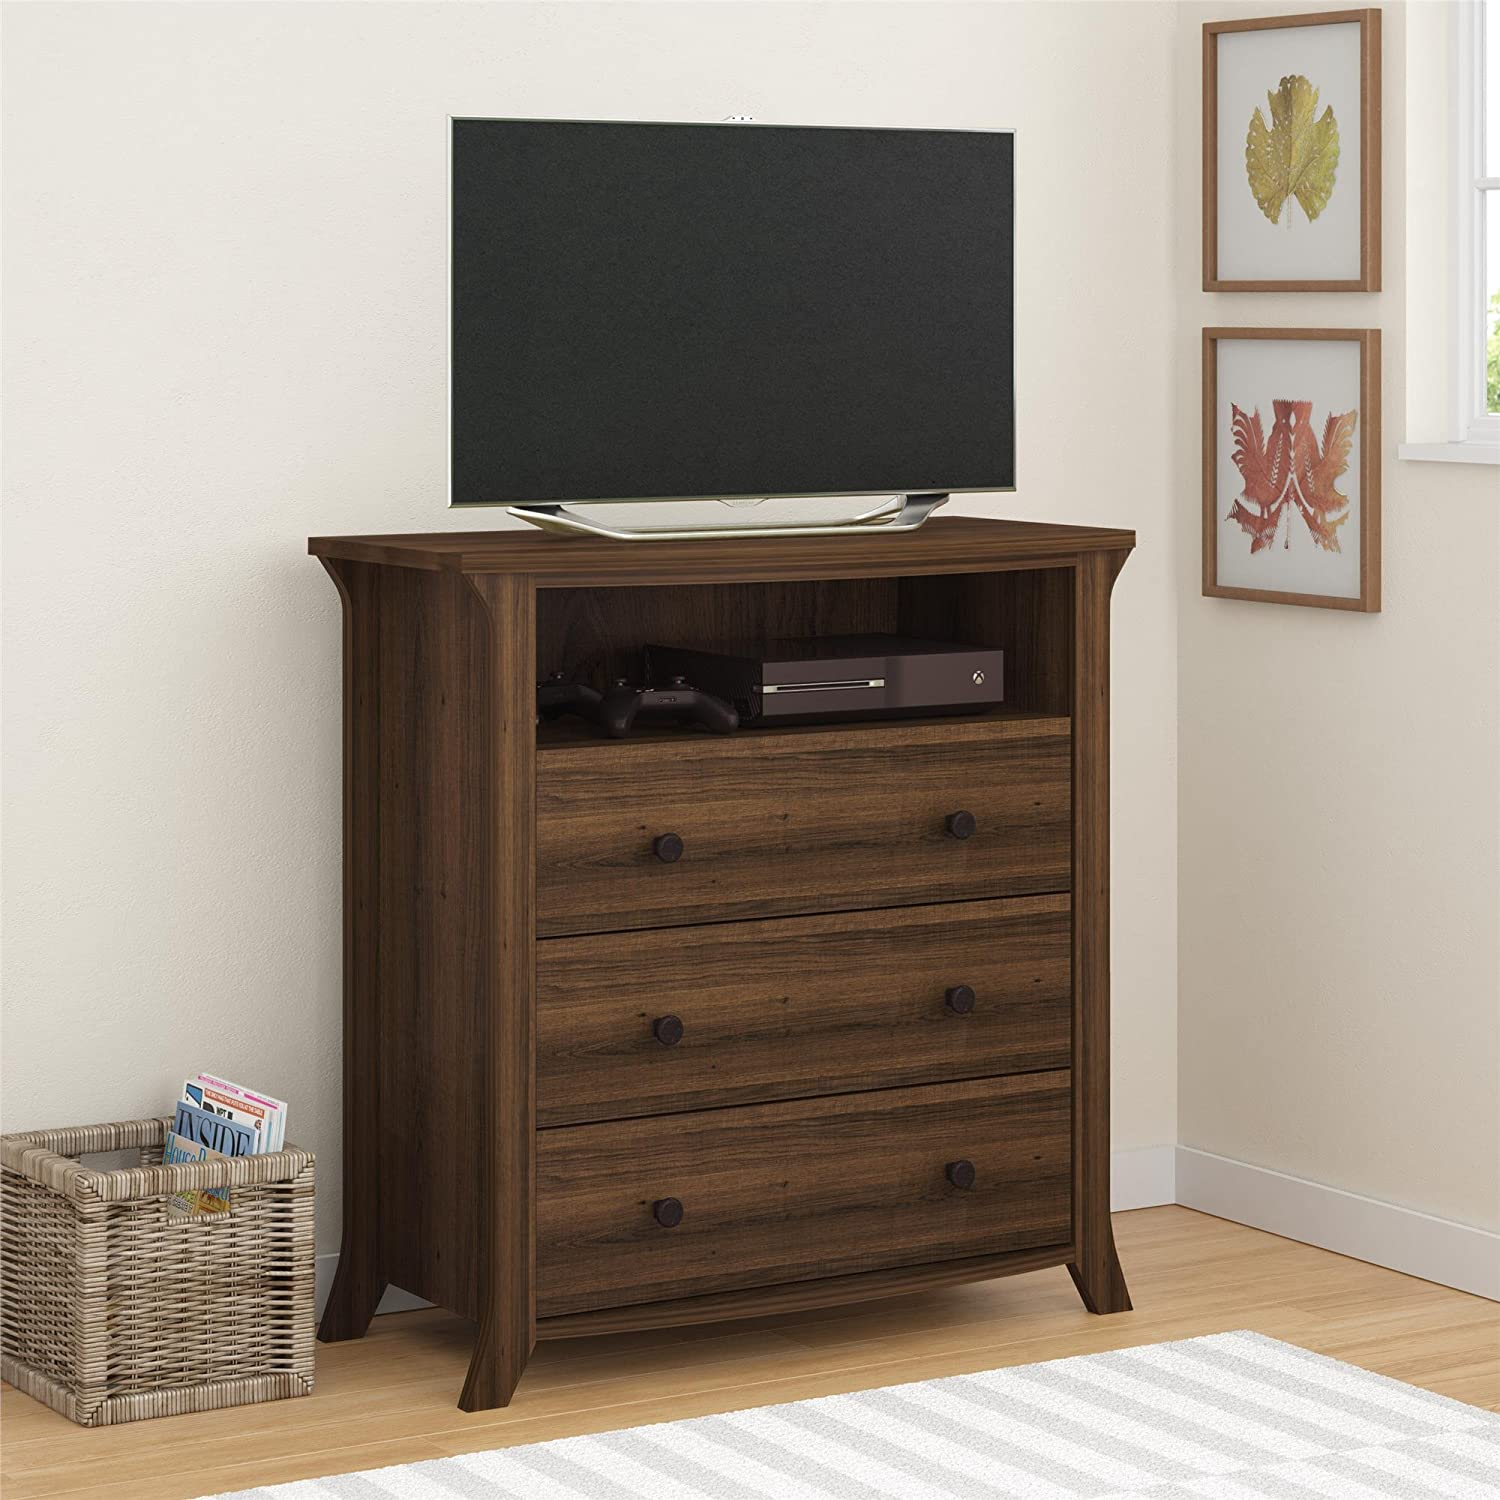 Amazon com  Ameriwood Home Oakridge 3 Drawer Media Dresser  Brown Oak   Kitchen   Dining. Amazon com  Ameriwood Home Oakridge 3 Drawer Media Dresser  Brown